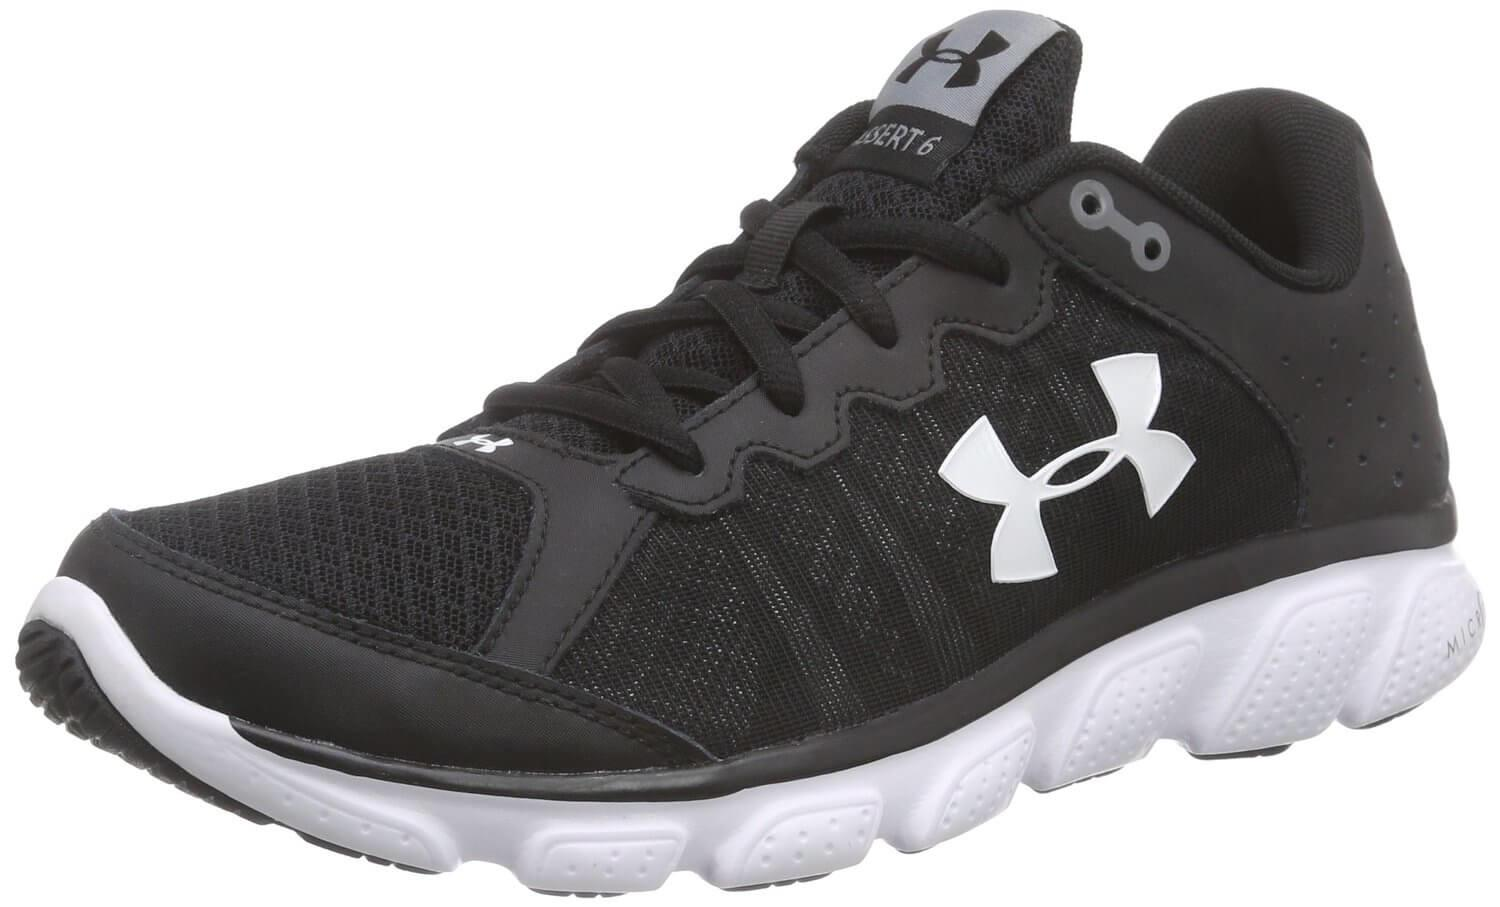 f167480973c Under Armour Micro G Assert 6 - Buy or Not in May 2019